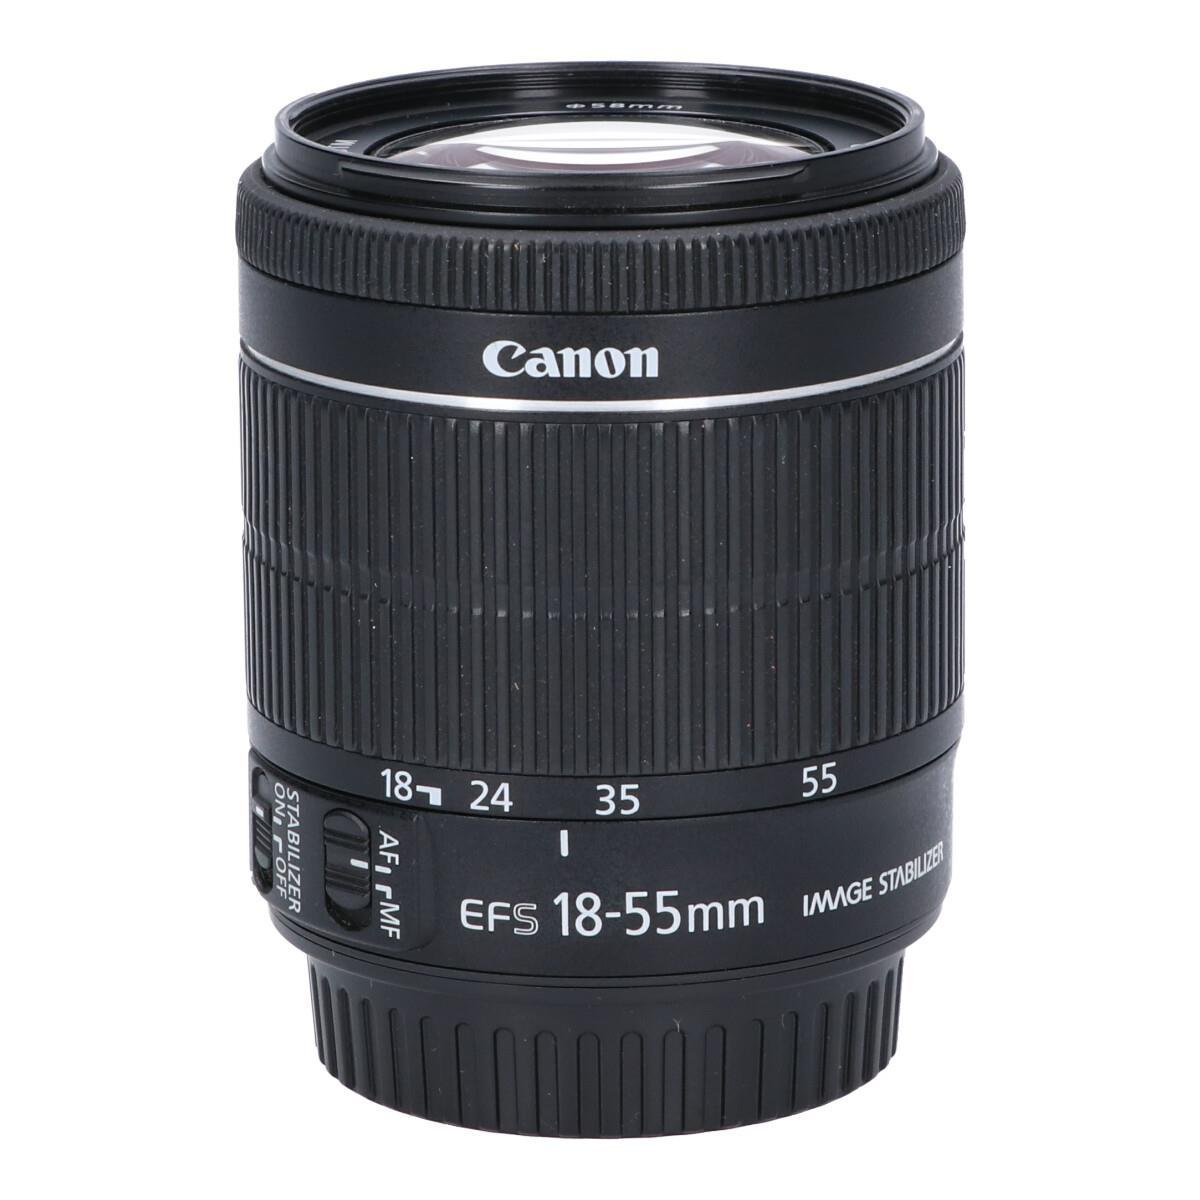 CANON EF-S18-55mm F3.5-5.6IS STM